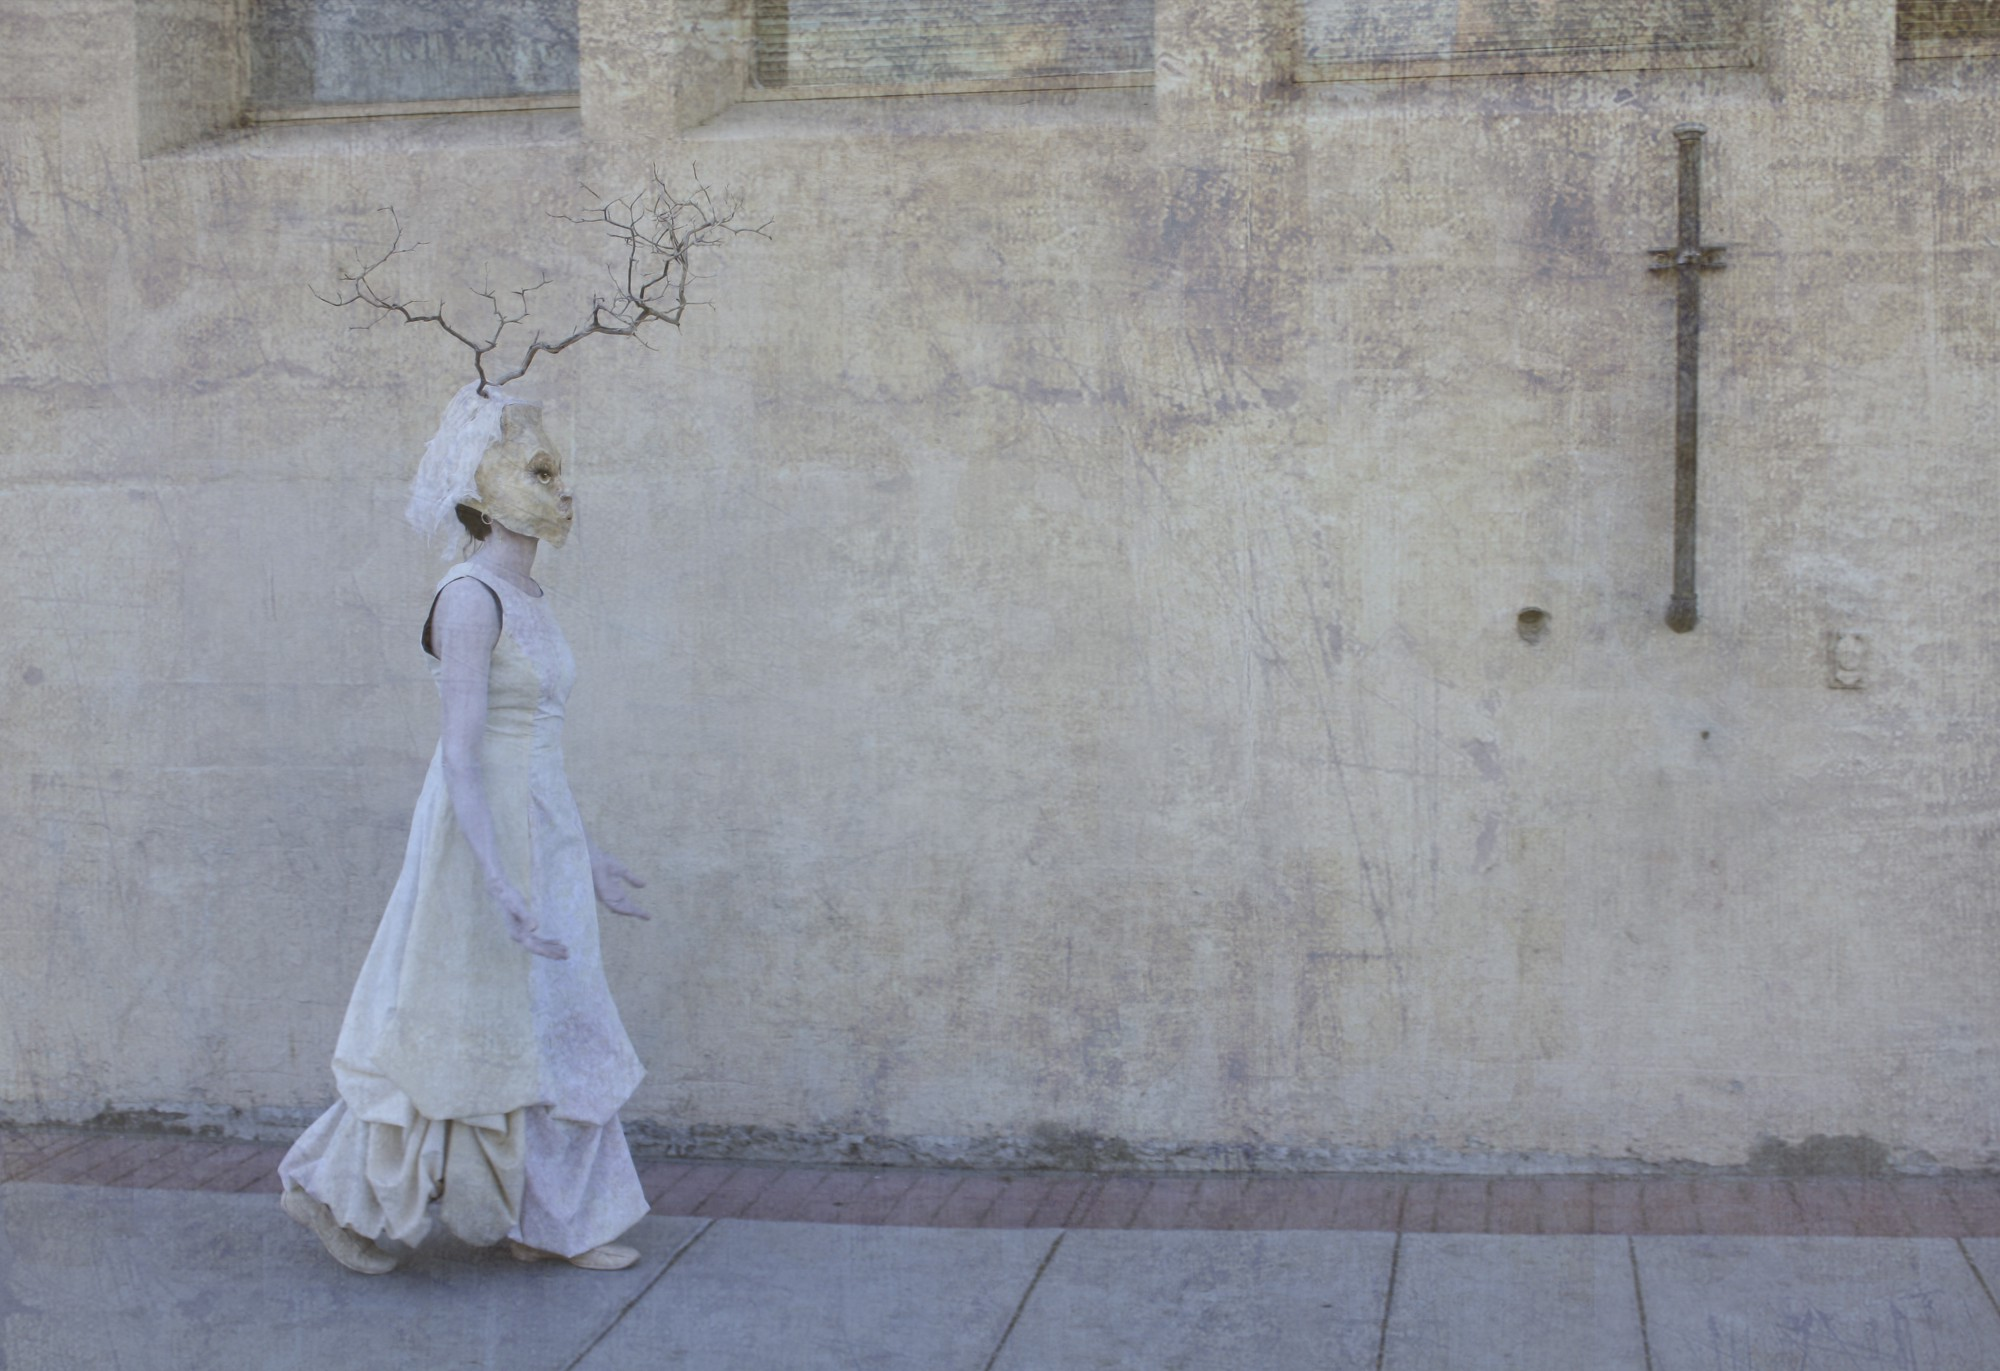 A masked figure in white walk along an old, wall, textured in shades of off-white and beige.